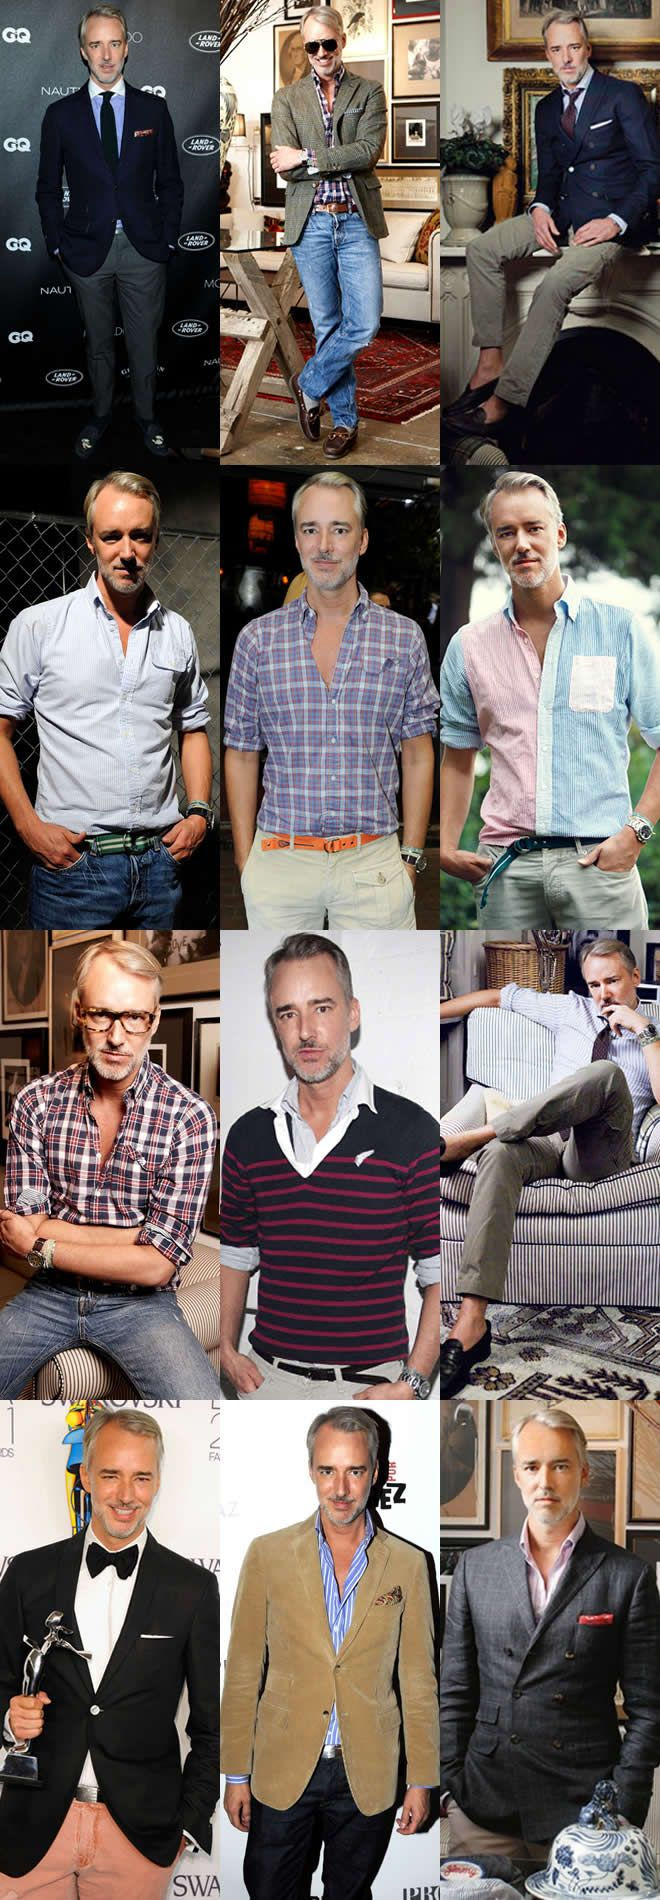 Male fashion designer Michael Bastian, leading by example.